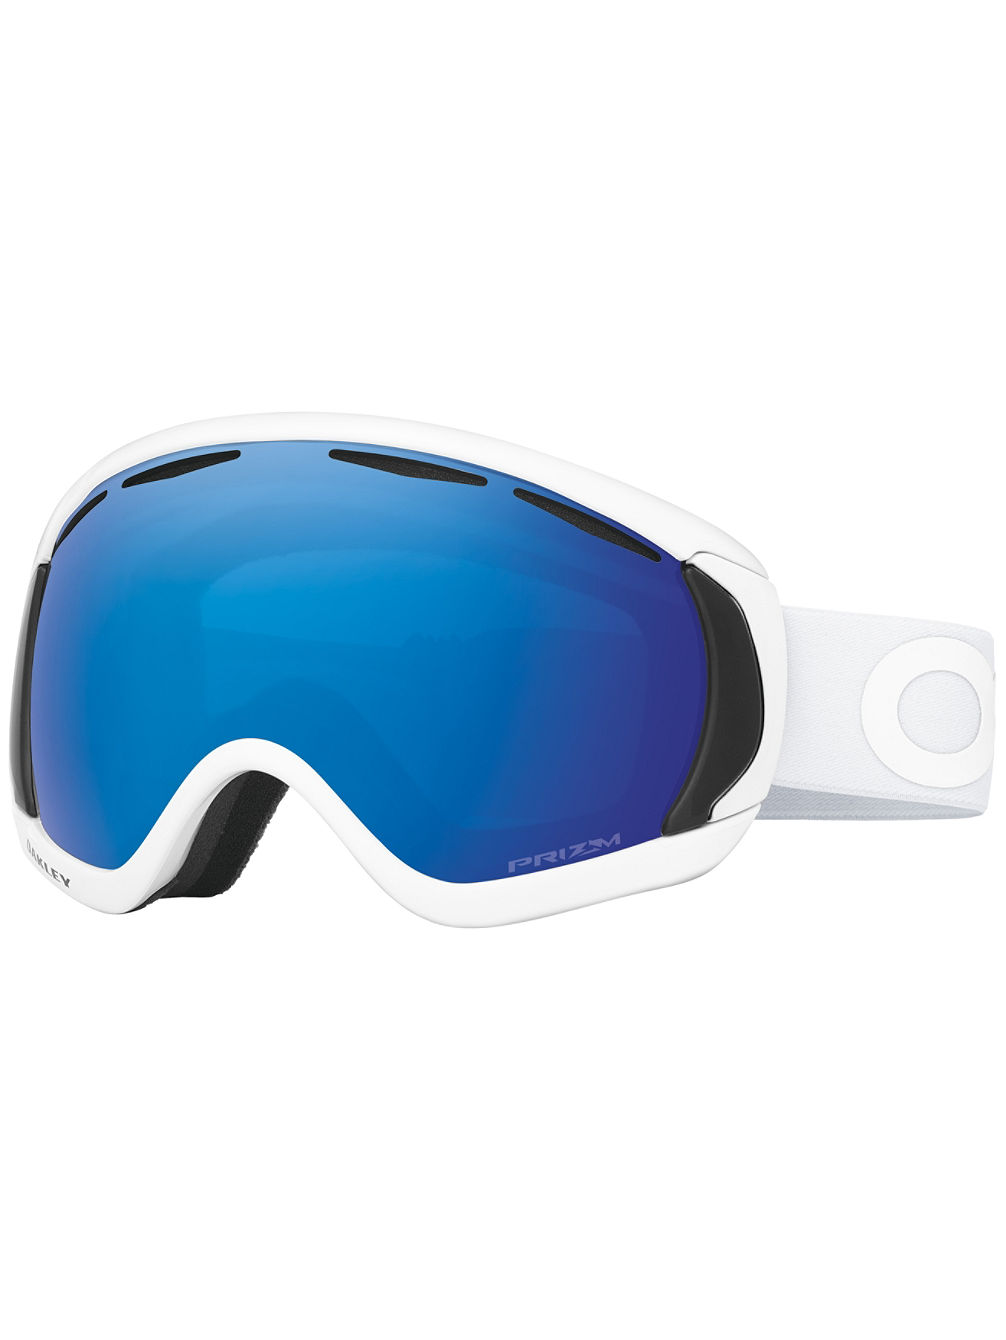 Canopy Factory Pilot Whiteout Goggle